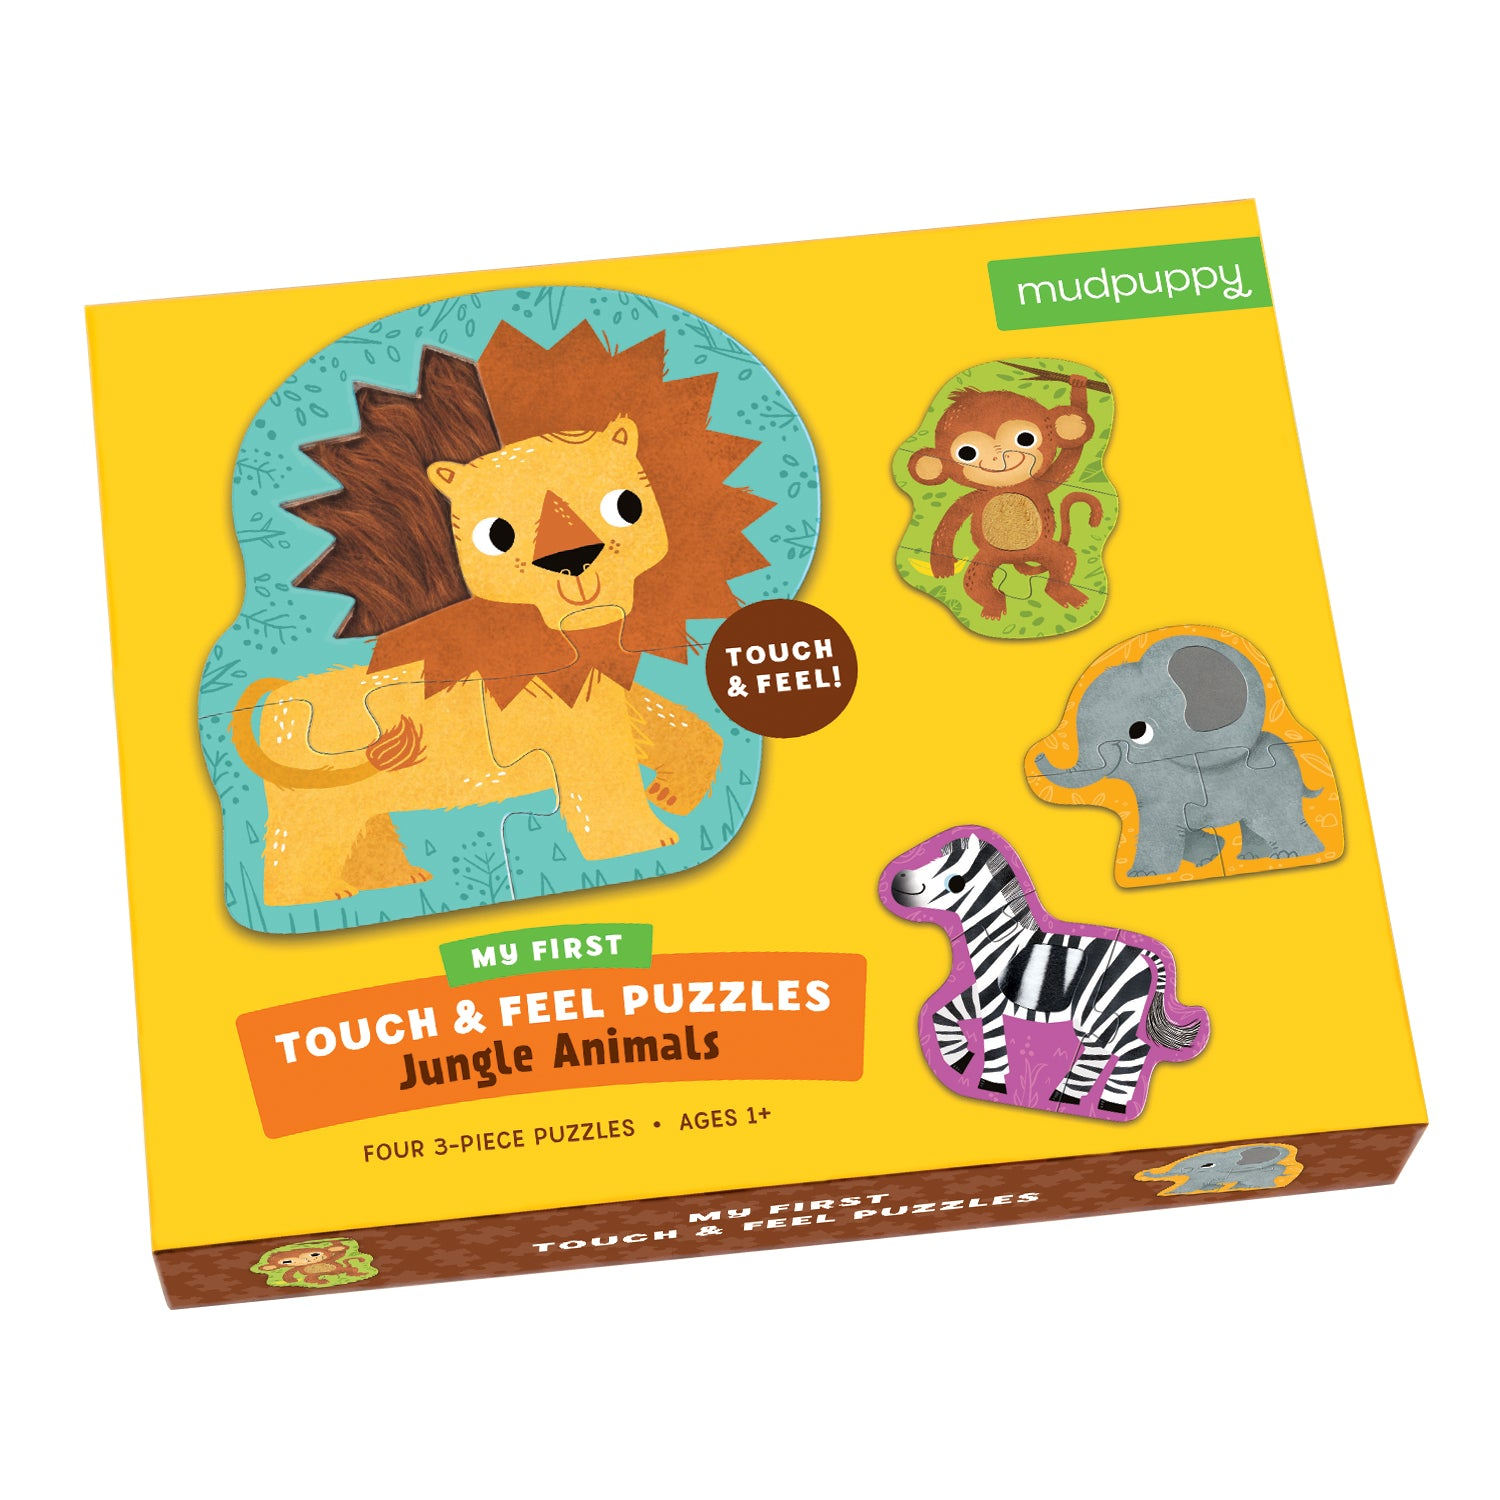 Mudpuppy - My First Touch & Feel Puzzle -Jungle Animals